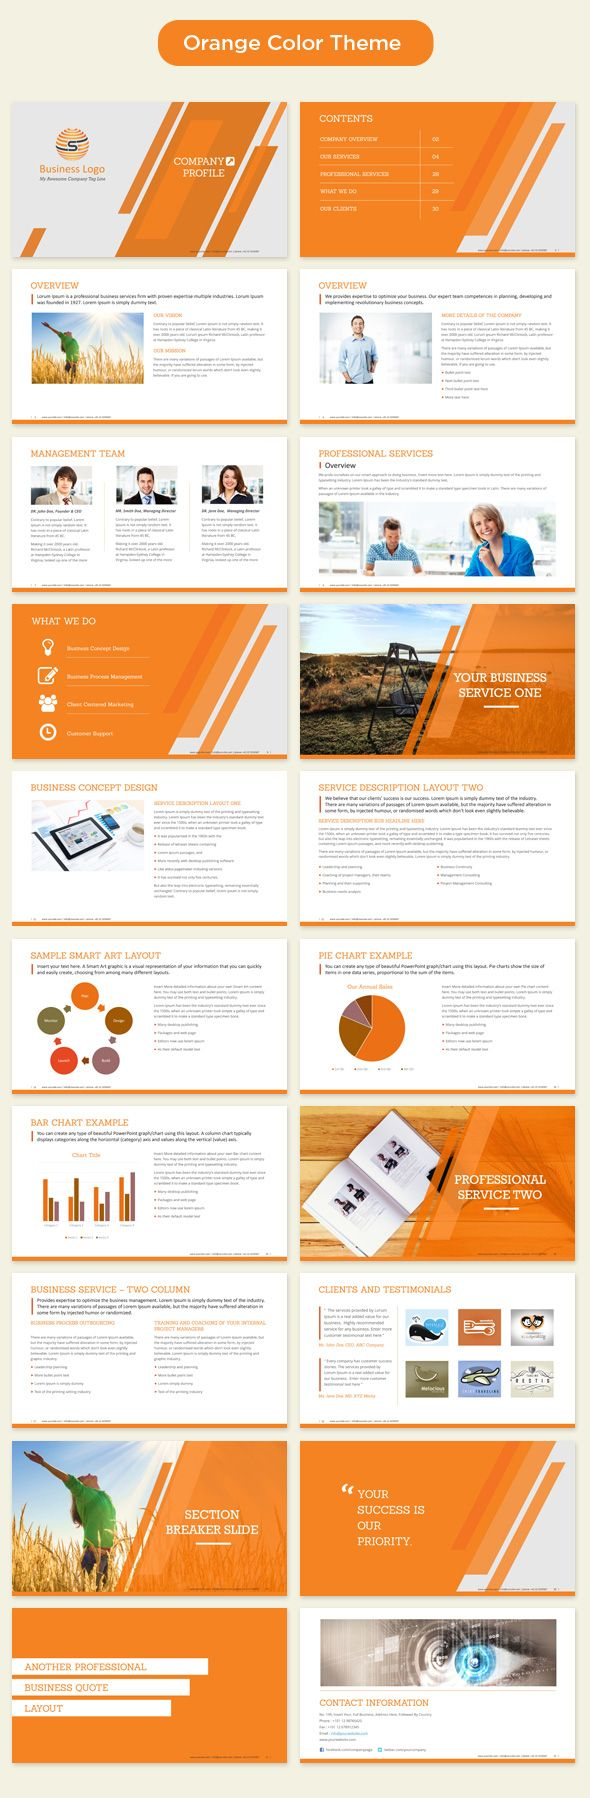 Company Profile Template PowerPoint The Template Business - Best of company profile ppt scheme